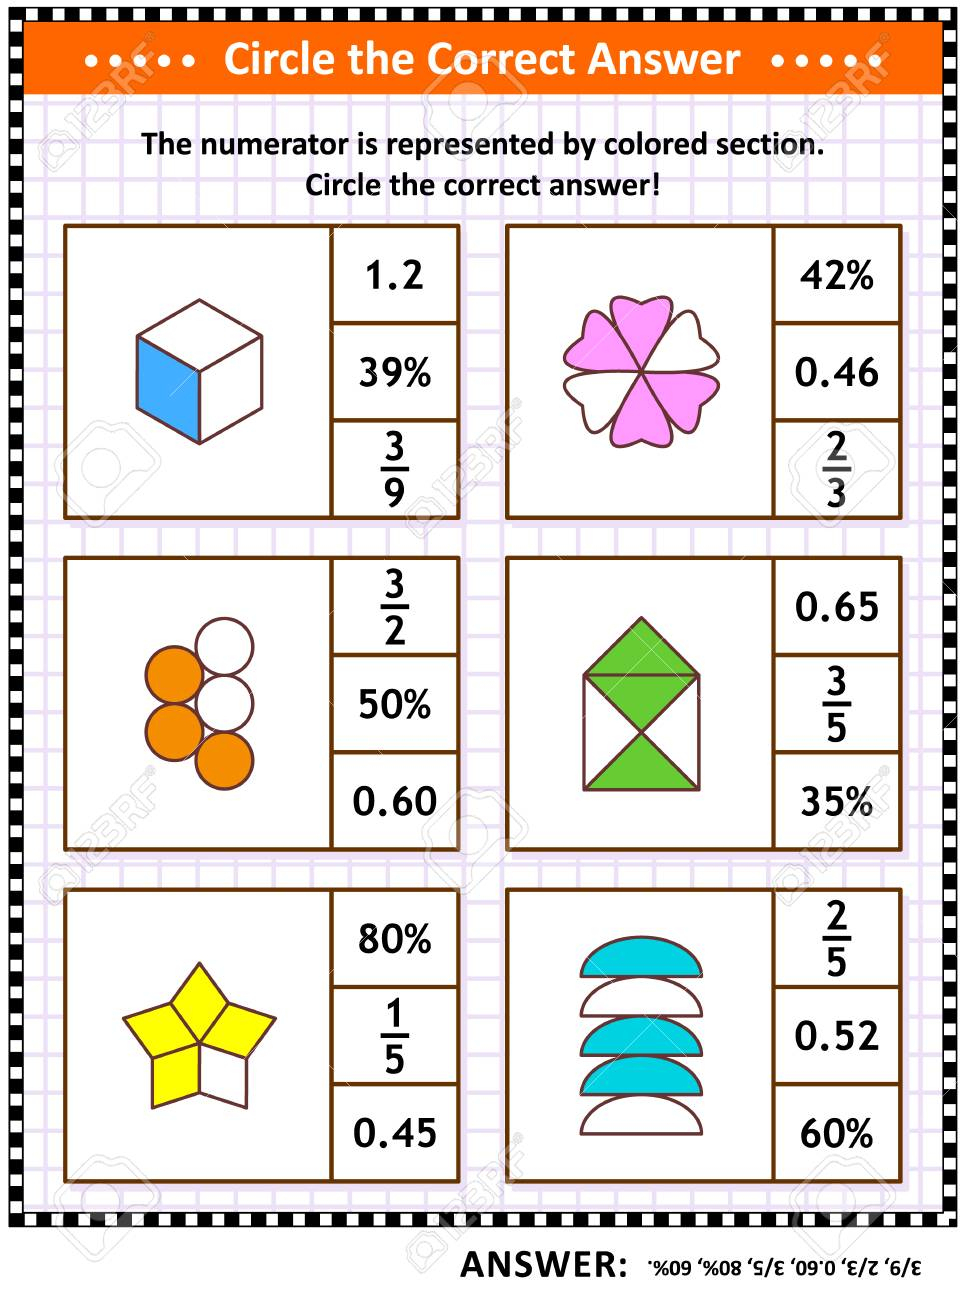 Math Skills And Iq Training Visual Puzzle Or Worksheet For - Worksheet Visual Puzzle